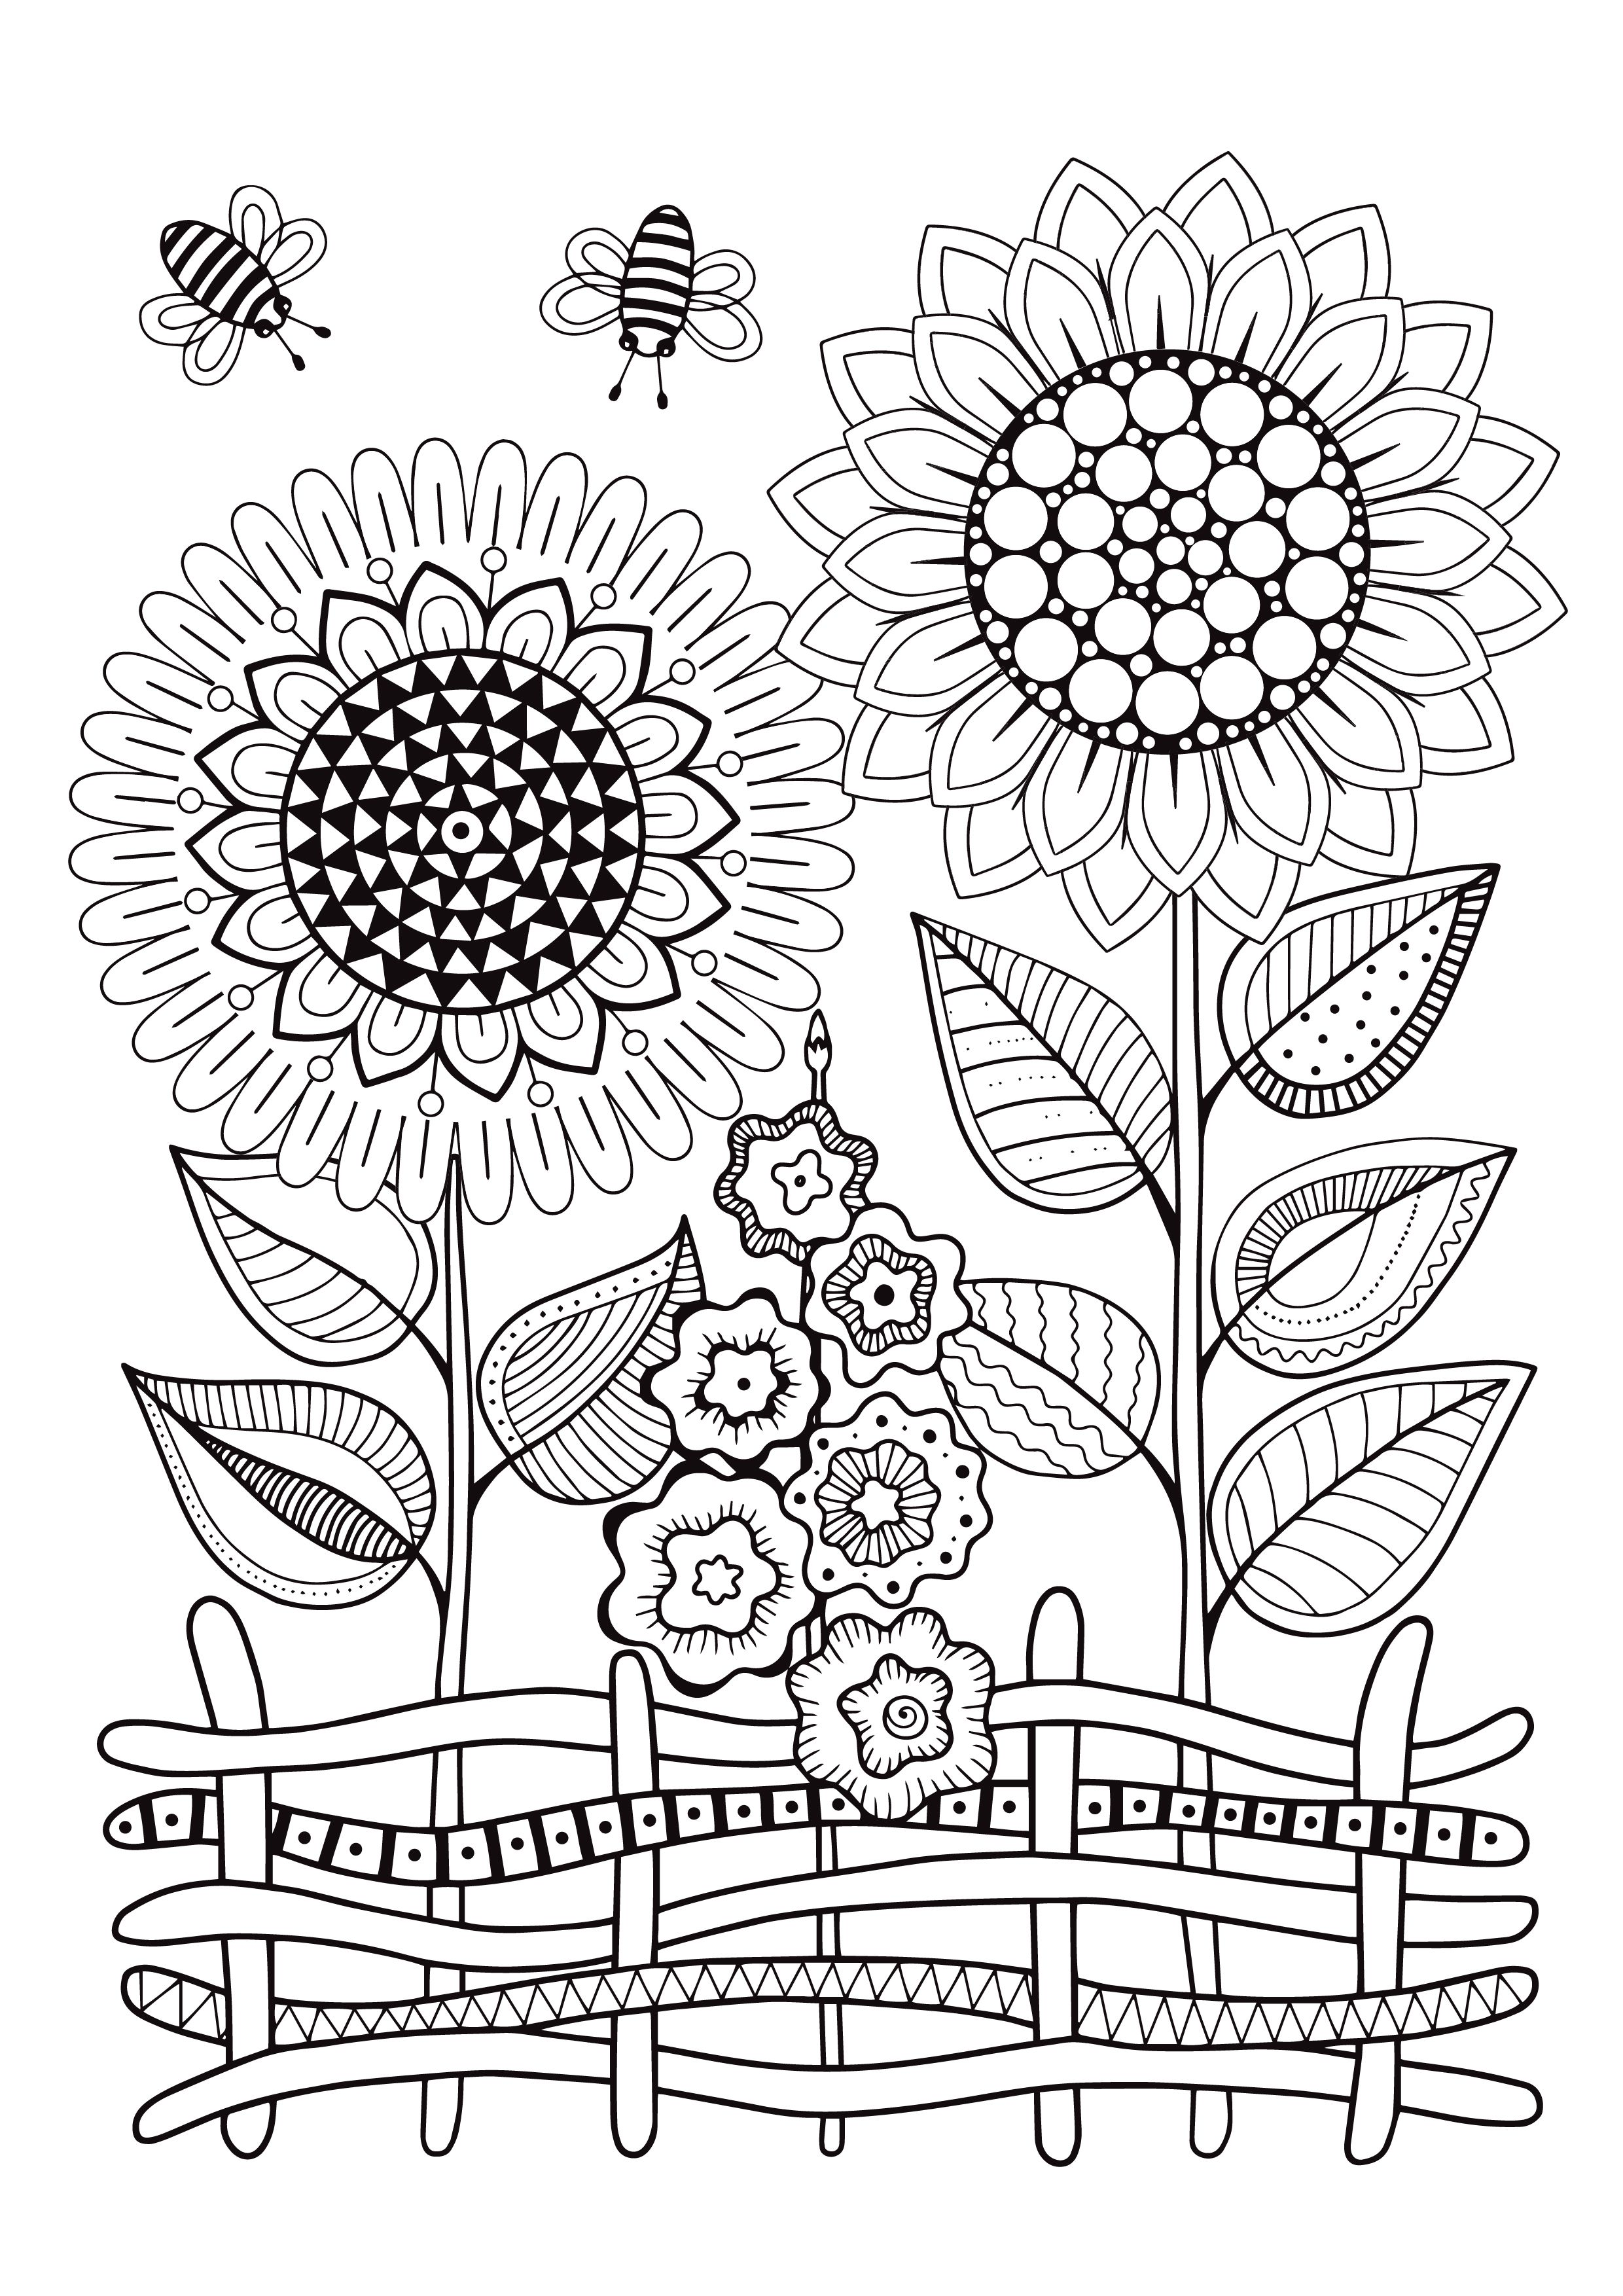 - Mindfulness Coloring Pages - 12 Flowers (With Images) Sunflower